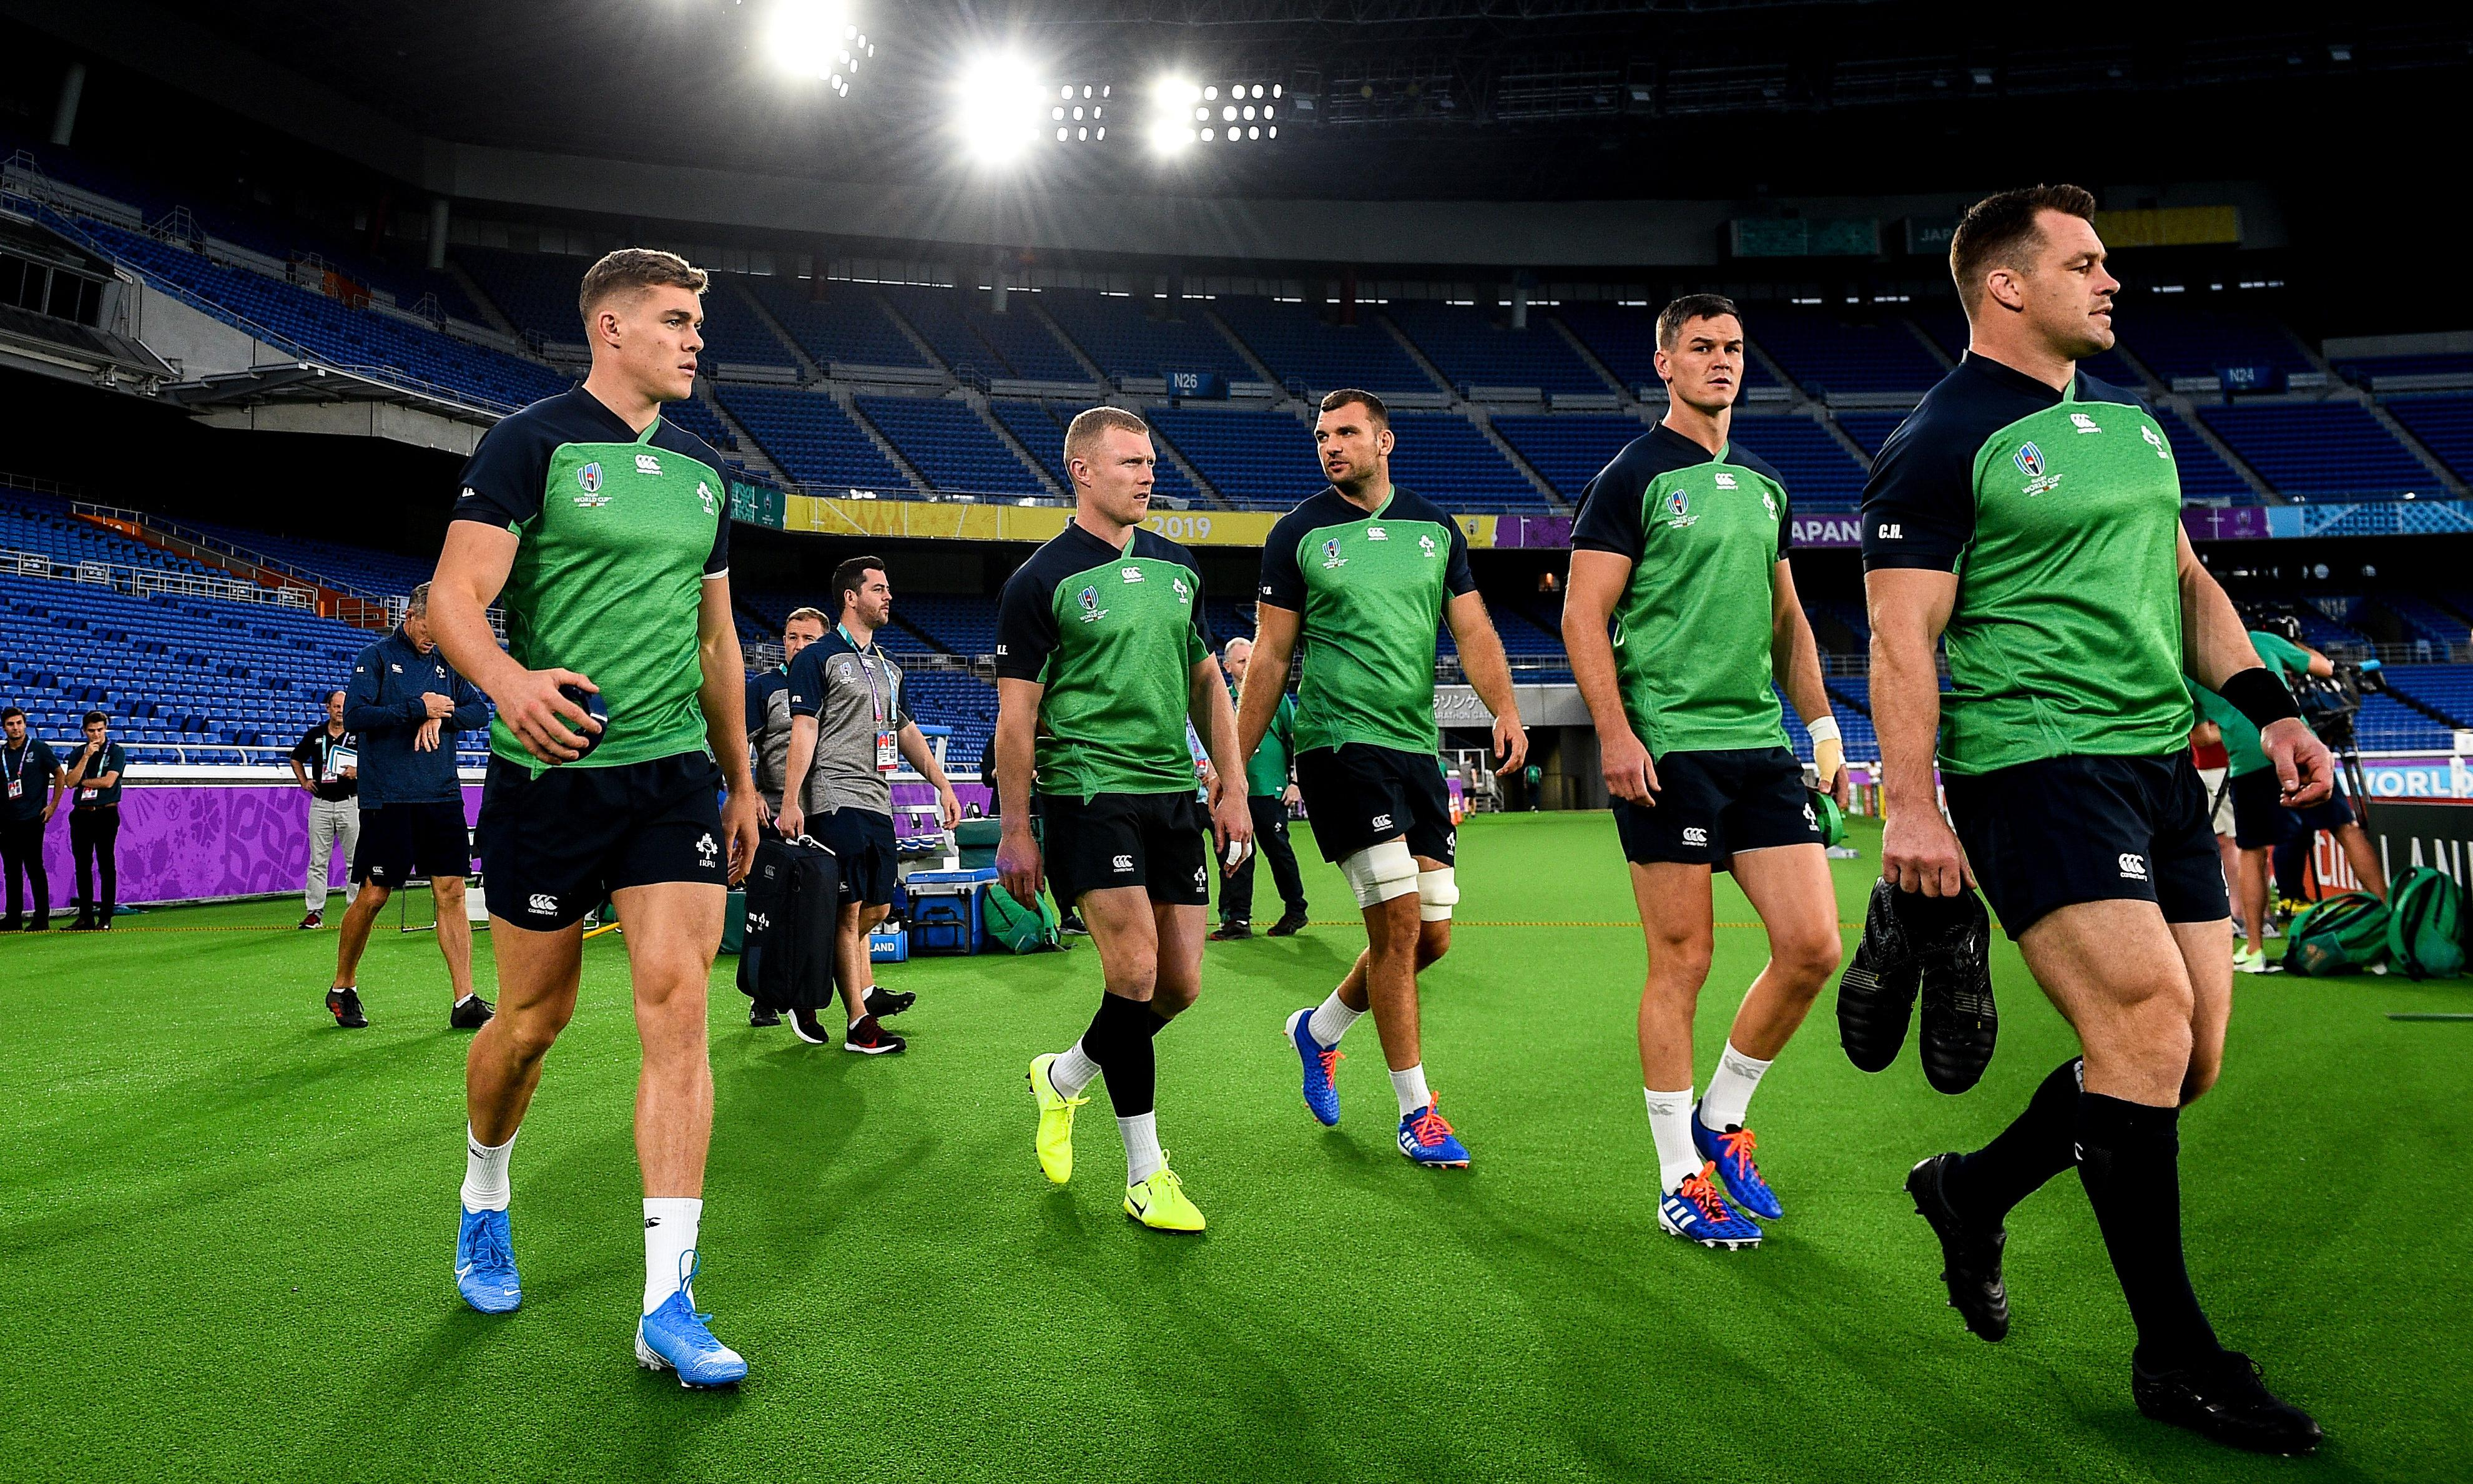 Ireland v Scotland match likely to leave losers fighting for second in pool